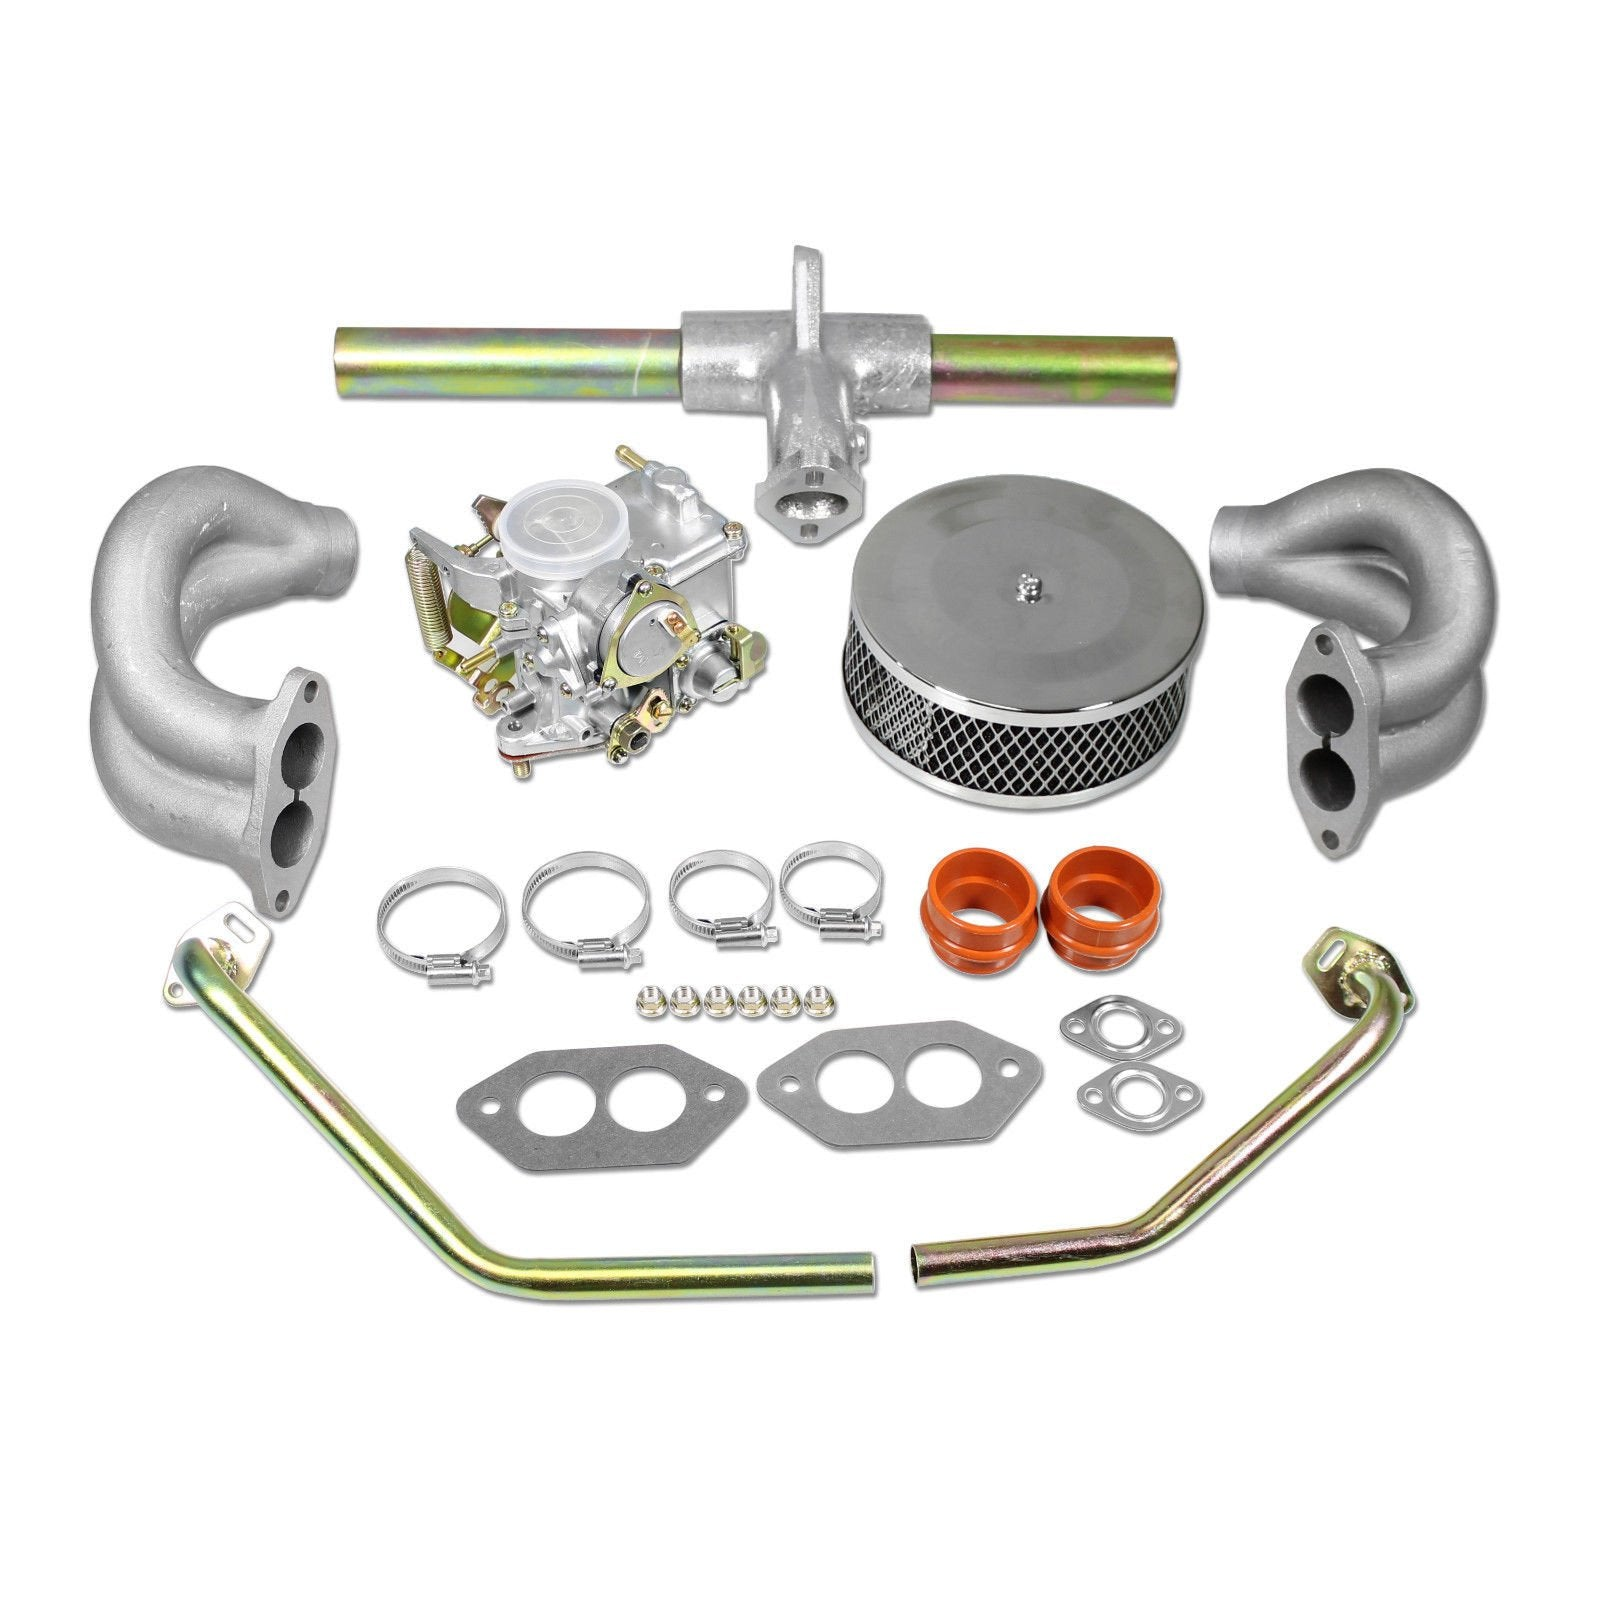 VW 34 Type 1 & 2 PICT-3 Carburetor Kit with Air-Filter | AA